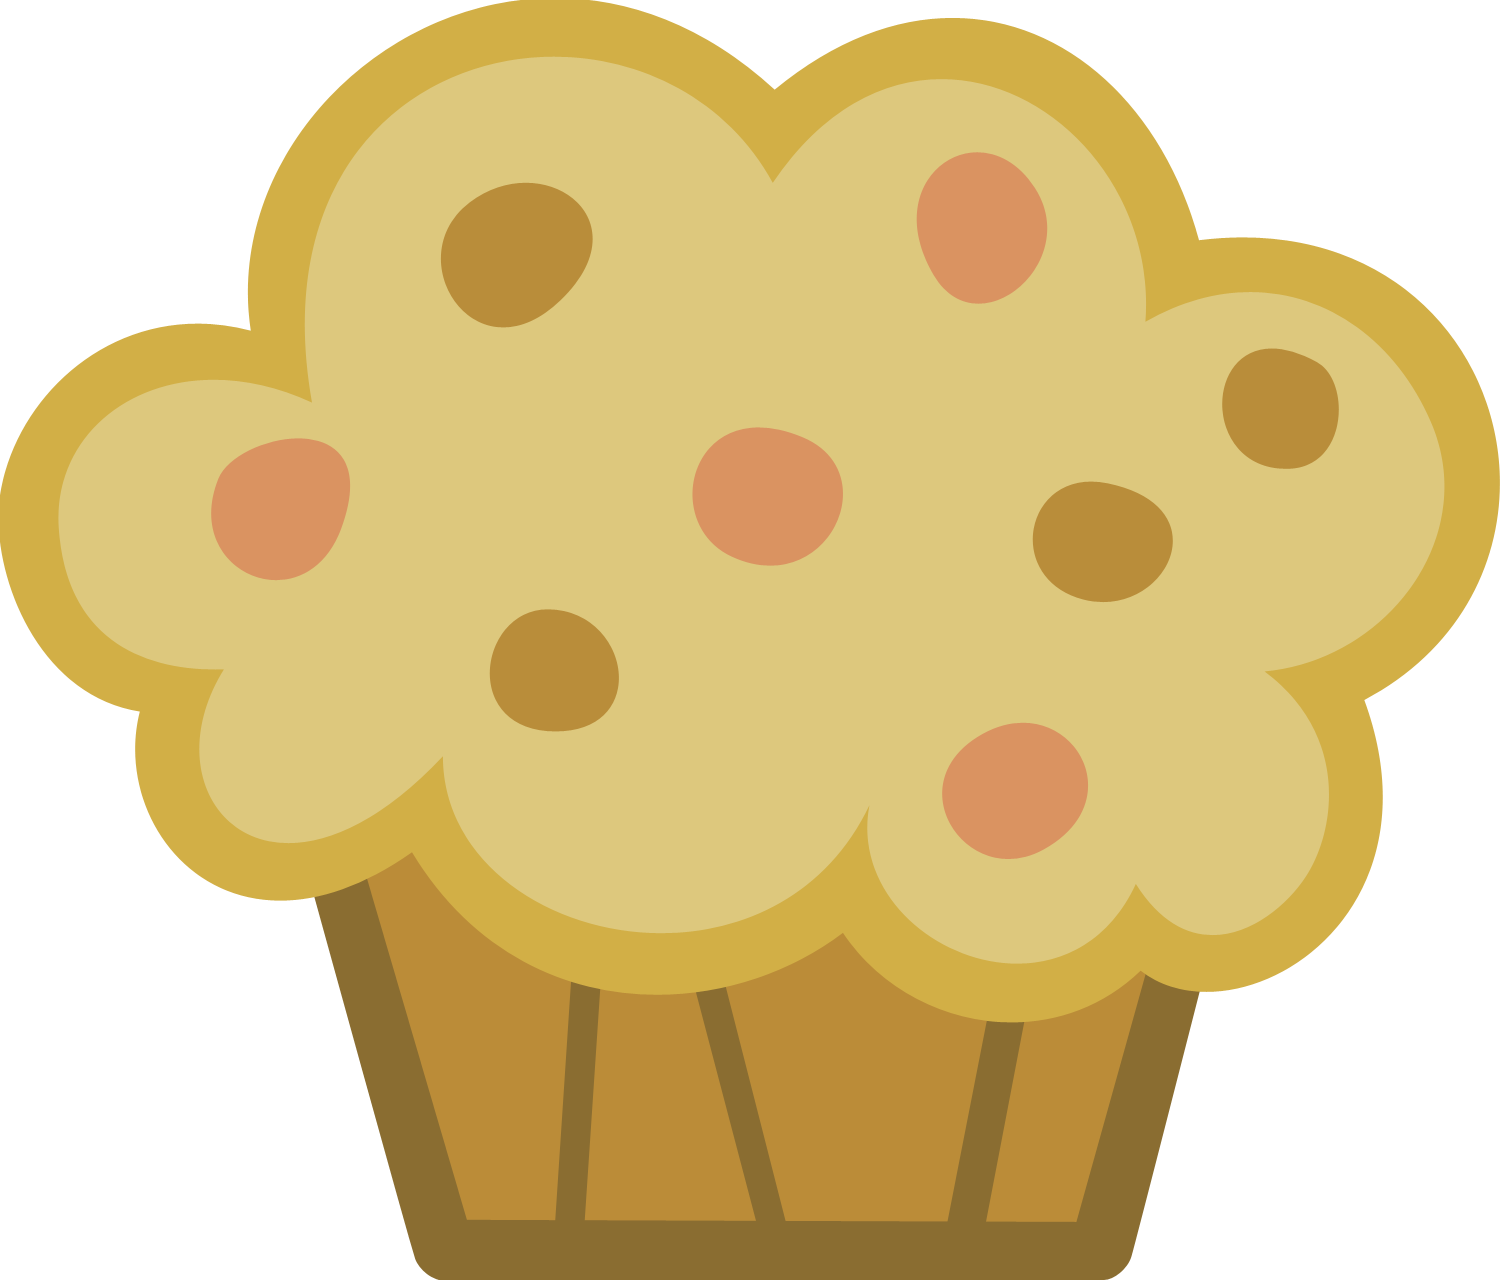 Muffin clipart baking muffin. Image mlp by timmy